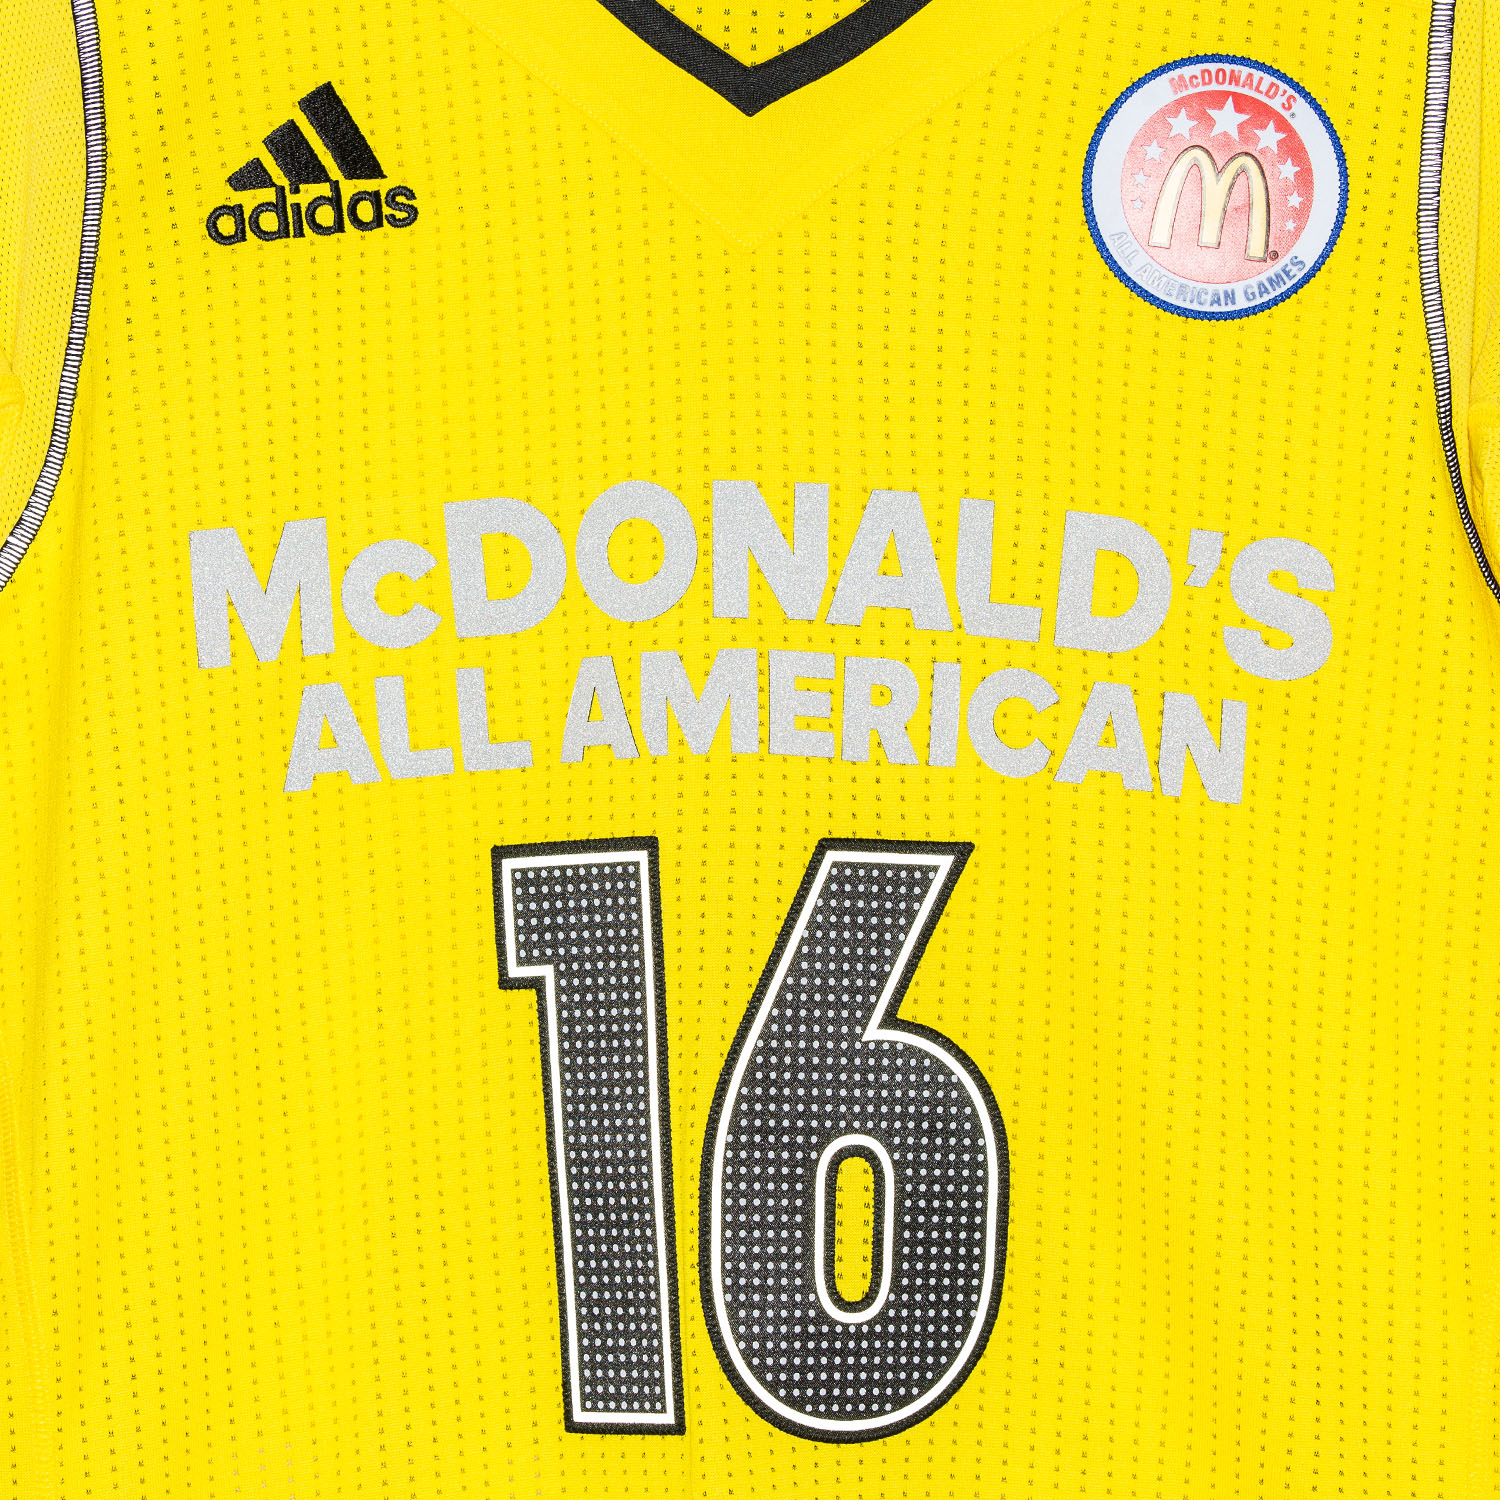 451314fd5 adidas-Unveils-Uniform-Collection-for-2016-McDonald¹s-All-American ...